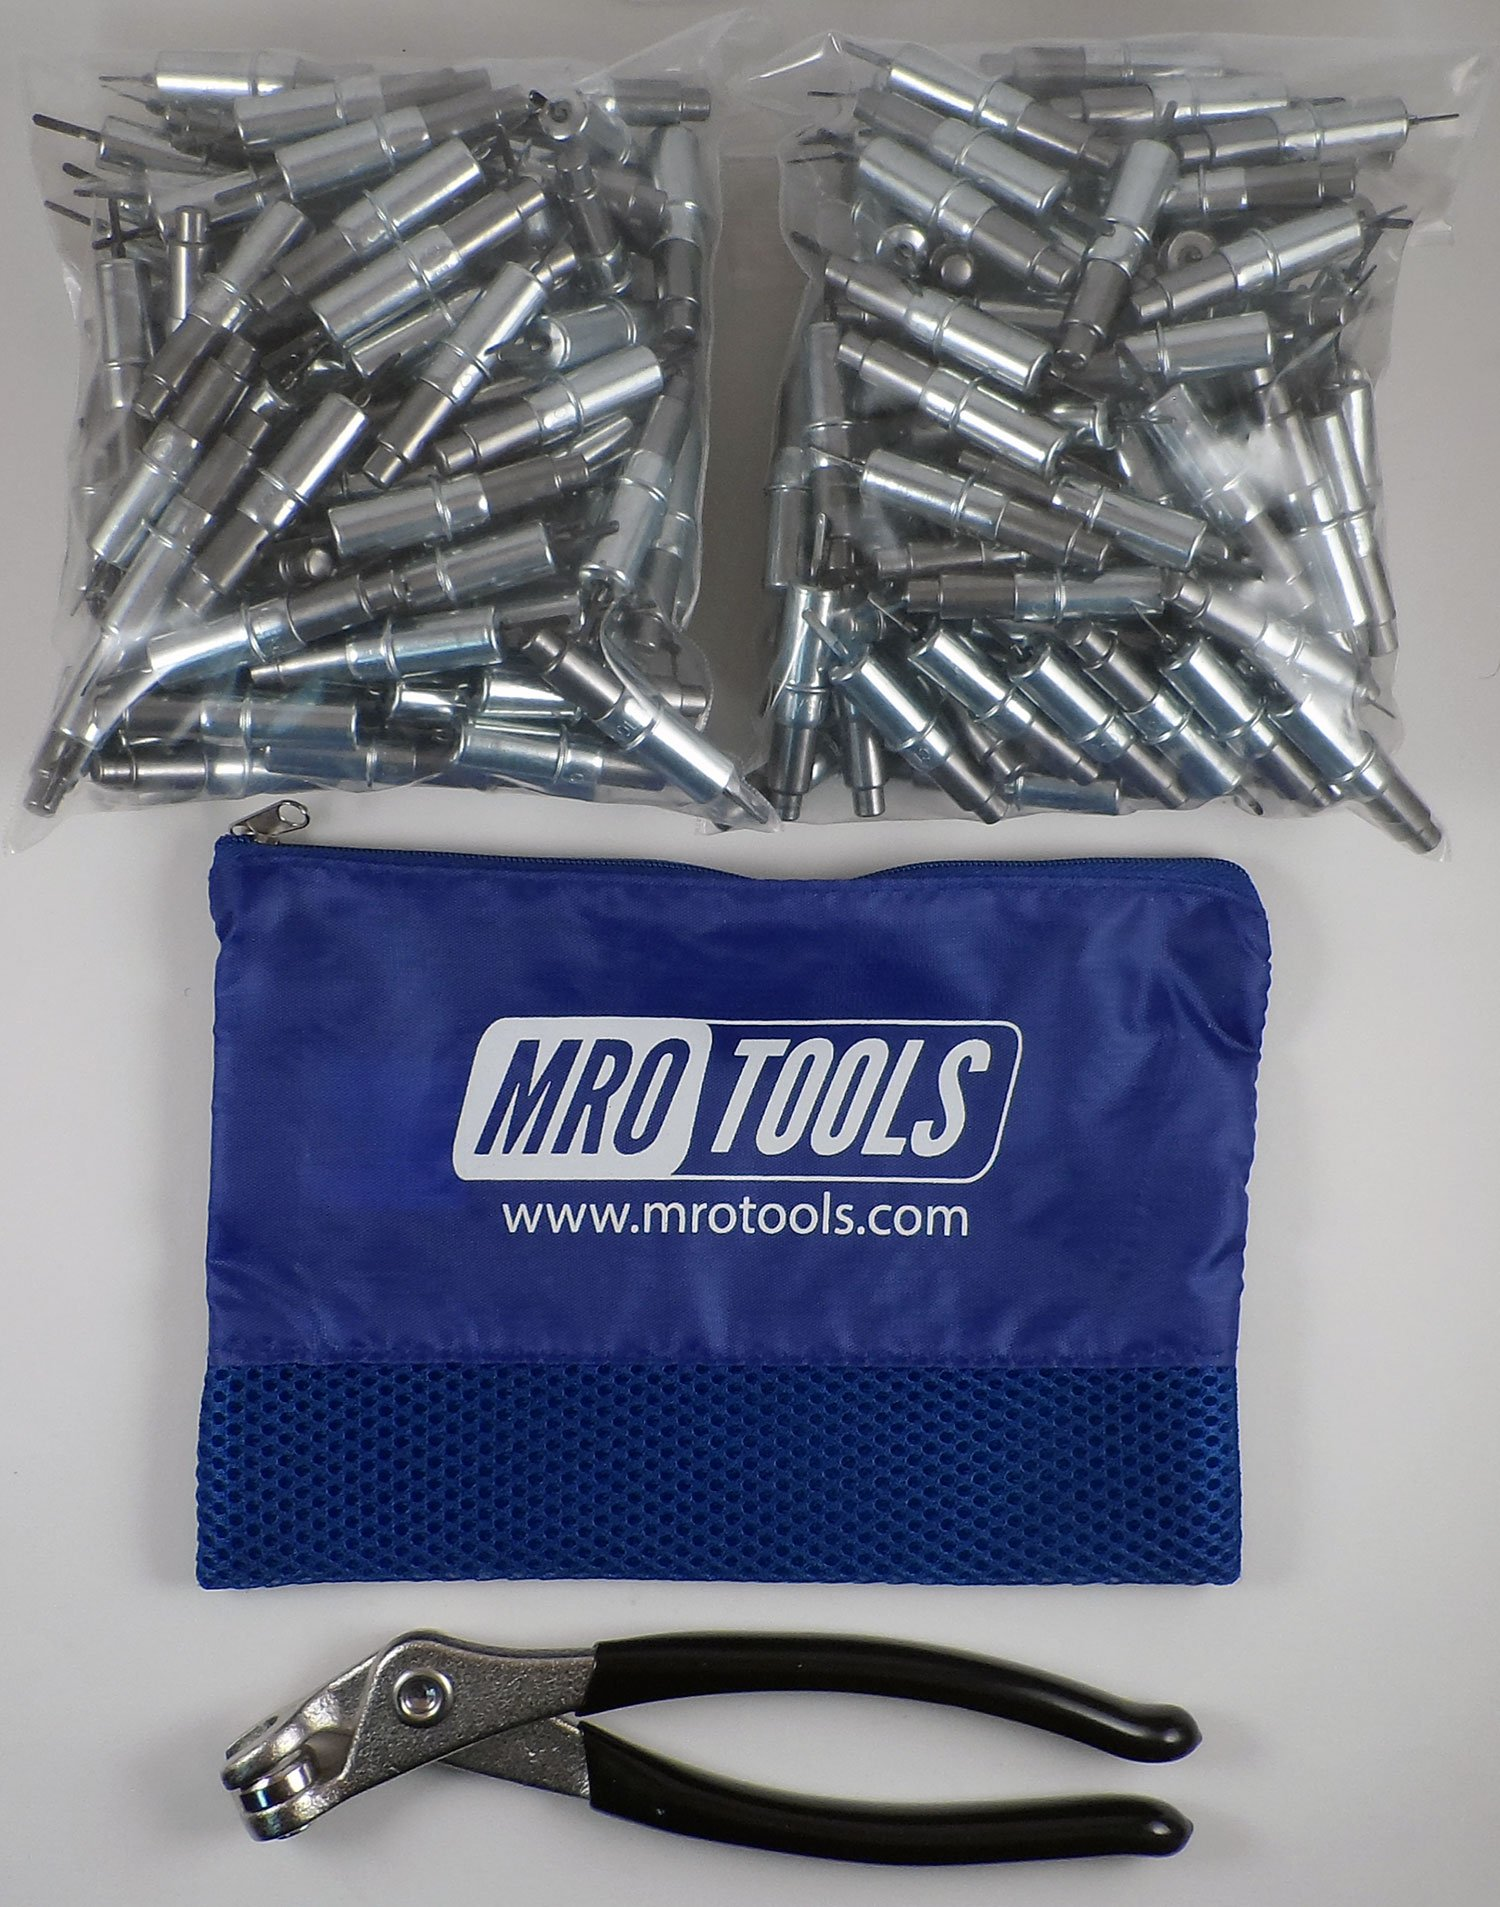 250 3/32 Heavy Duty Cleco Fasteners + Cleco Pliers w/ Carry Bag (KHD1S250-3/32) by MRO Tools Cleco Fasteners